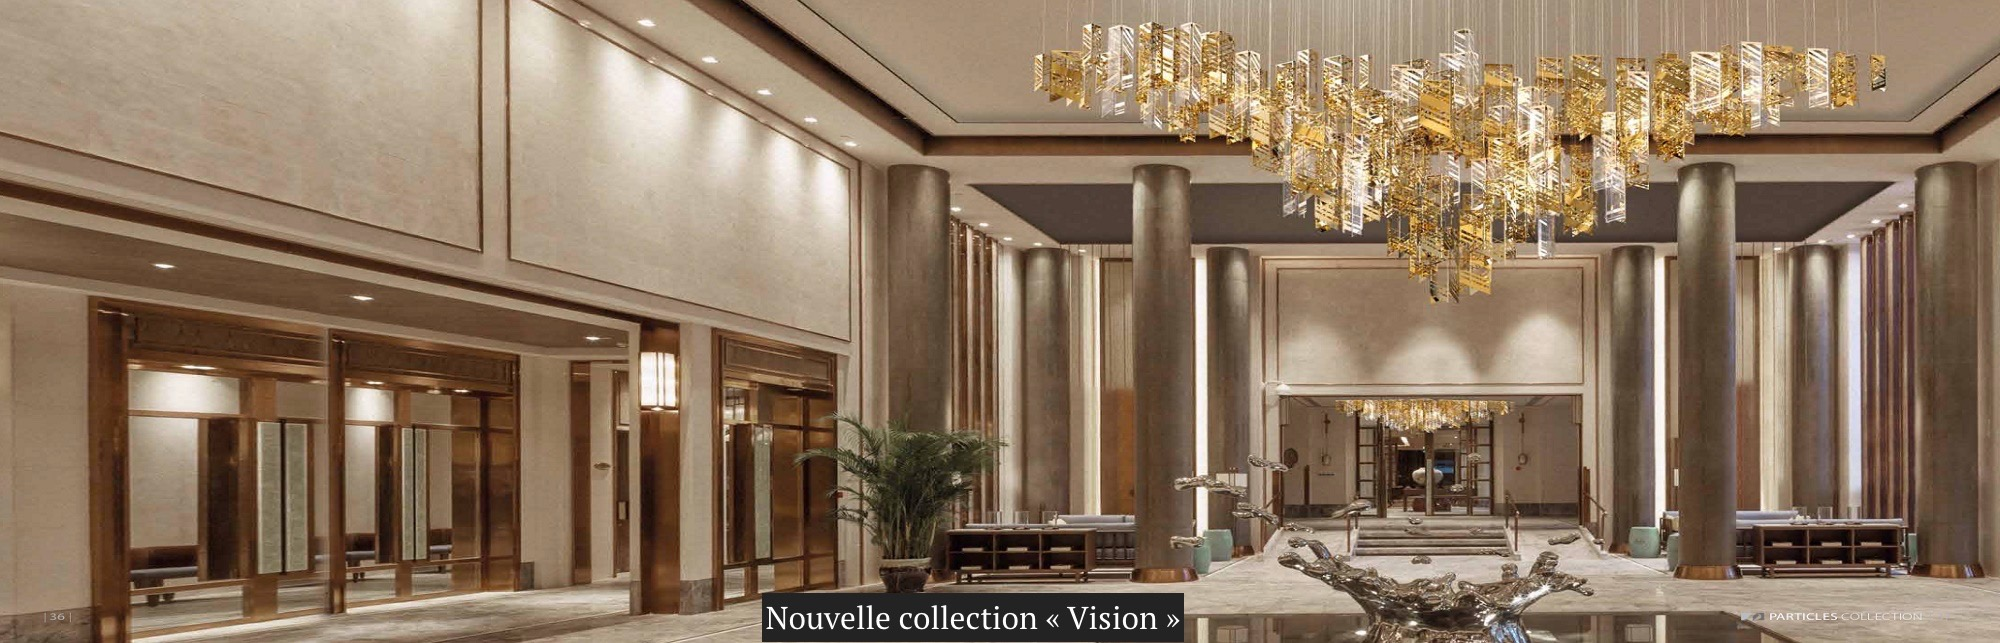 Nouvelle collection « Vision »